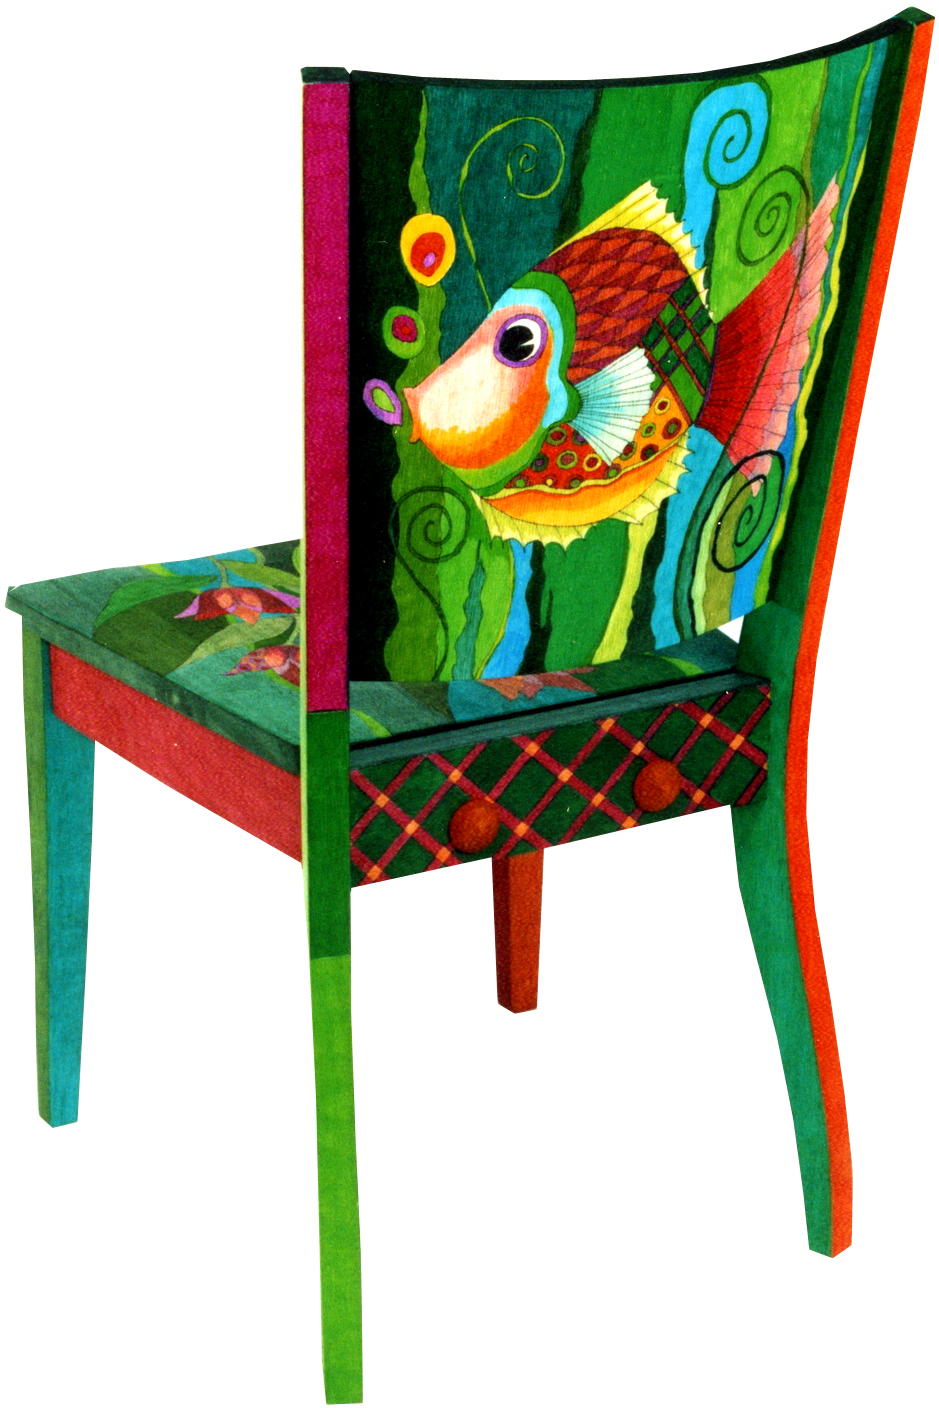 Furniture painting ideas techniques - Painted Fish On Pinterest Painted Fish Seahorses And